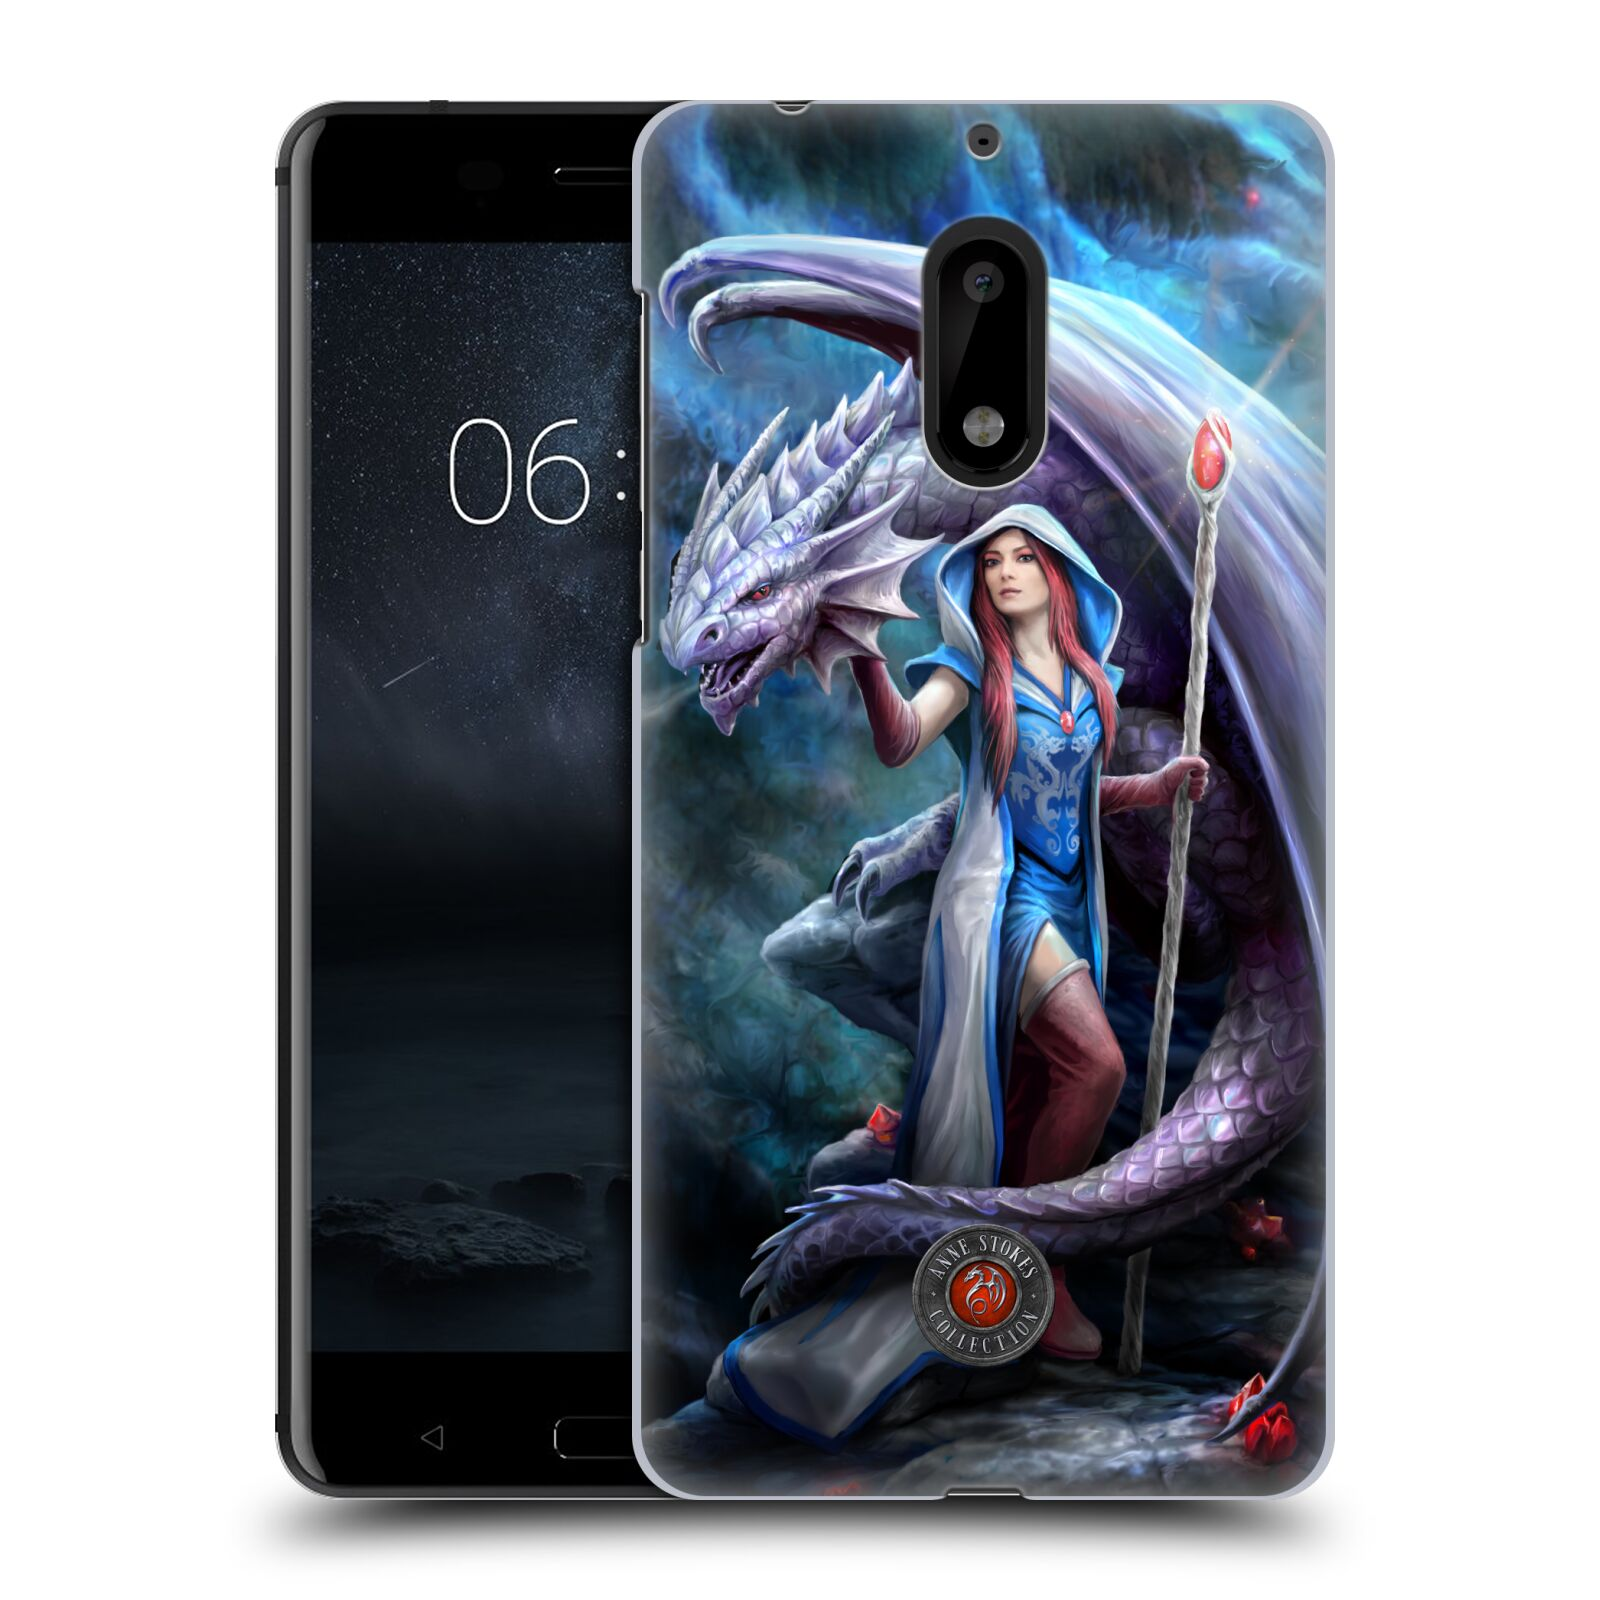 OFFICIAL-ANNE-STOKES-DRAGON-FRIENDSHIP-2-HARD-BACK-CASE-FOR-NOKIA-PHONES-1